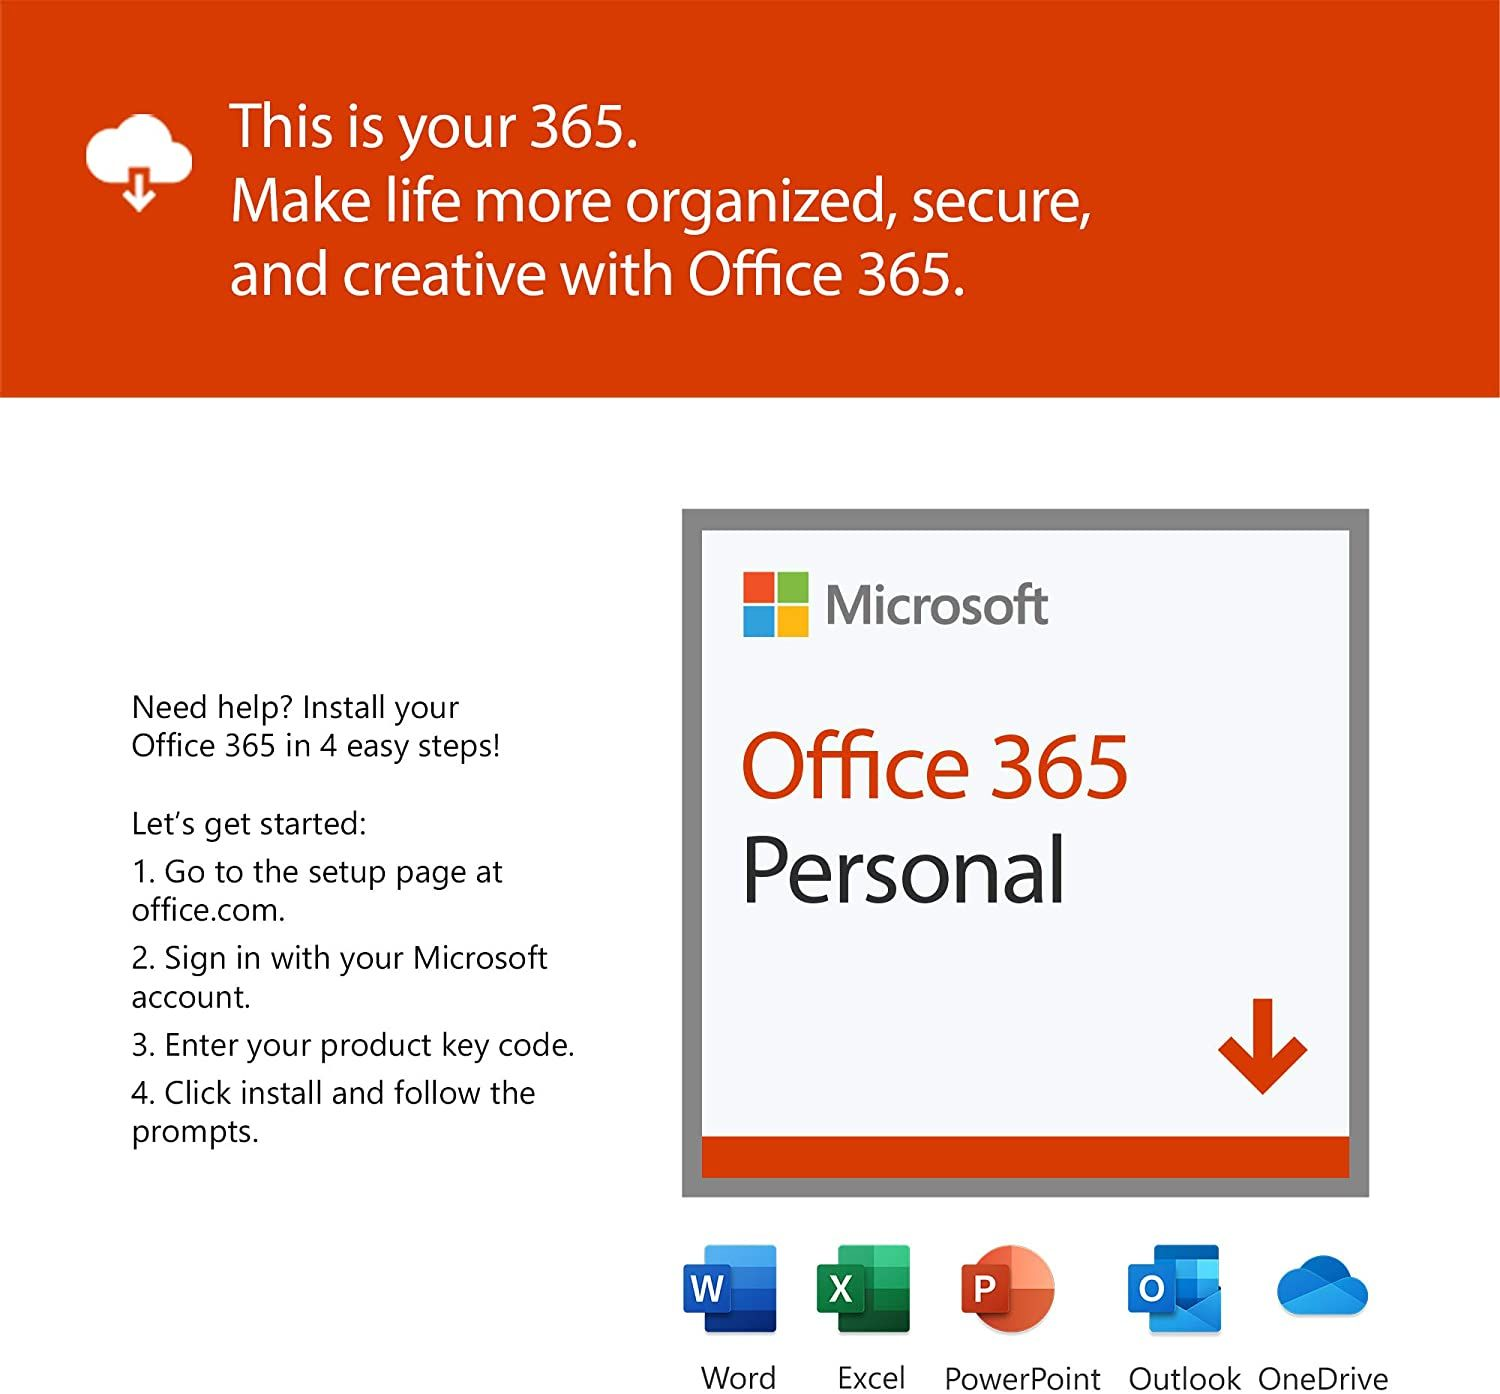 8f4fc6c32ac7a31fdde06600077b4057 - How To Cancel Microsoft Office And Get A Refund